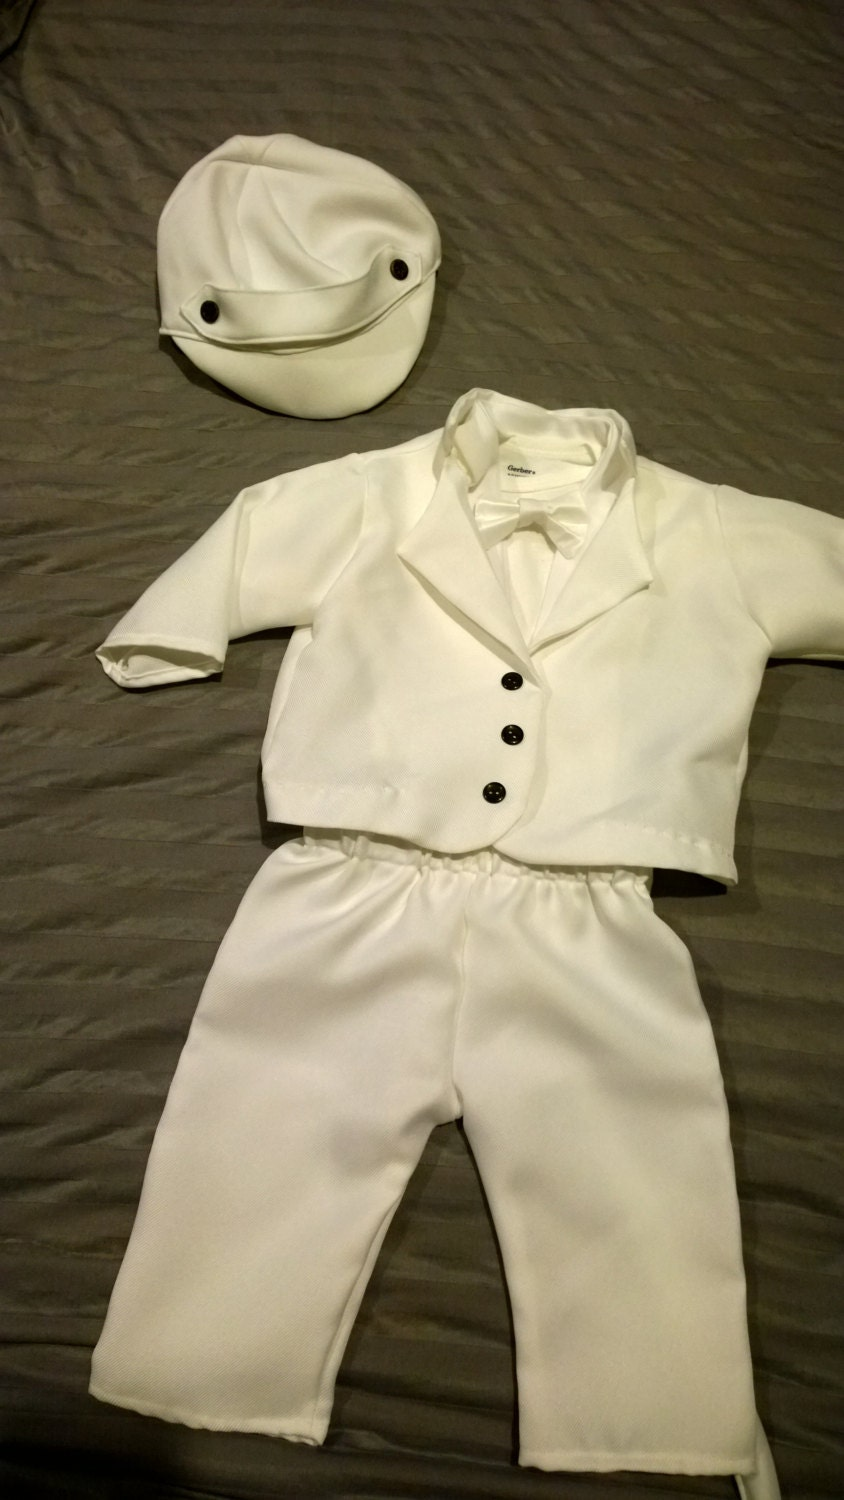 Baby junge taufe outfit taufe segnung wei outfit von - Taufe outfit junge ...